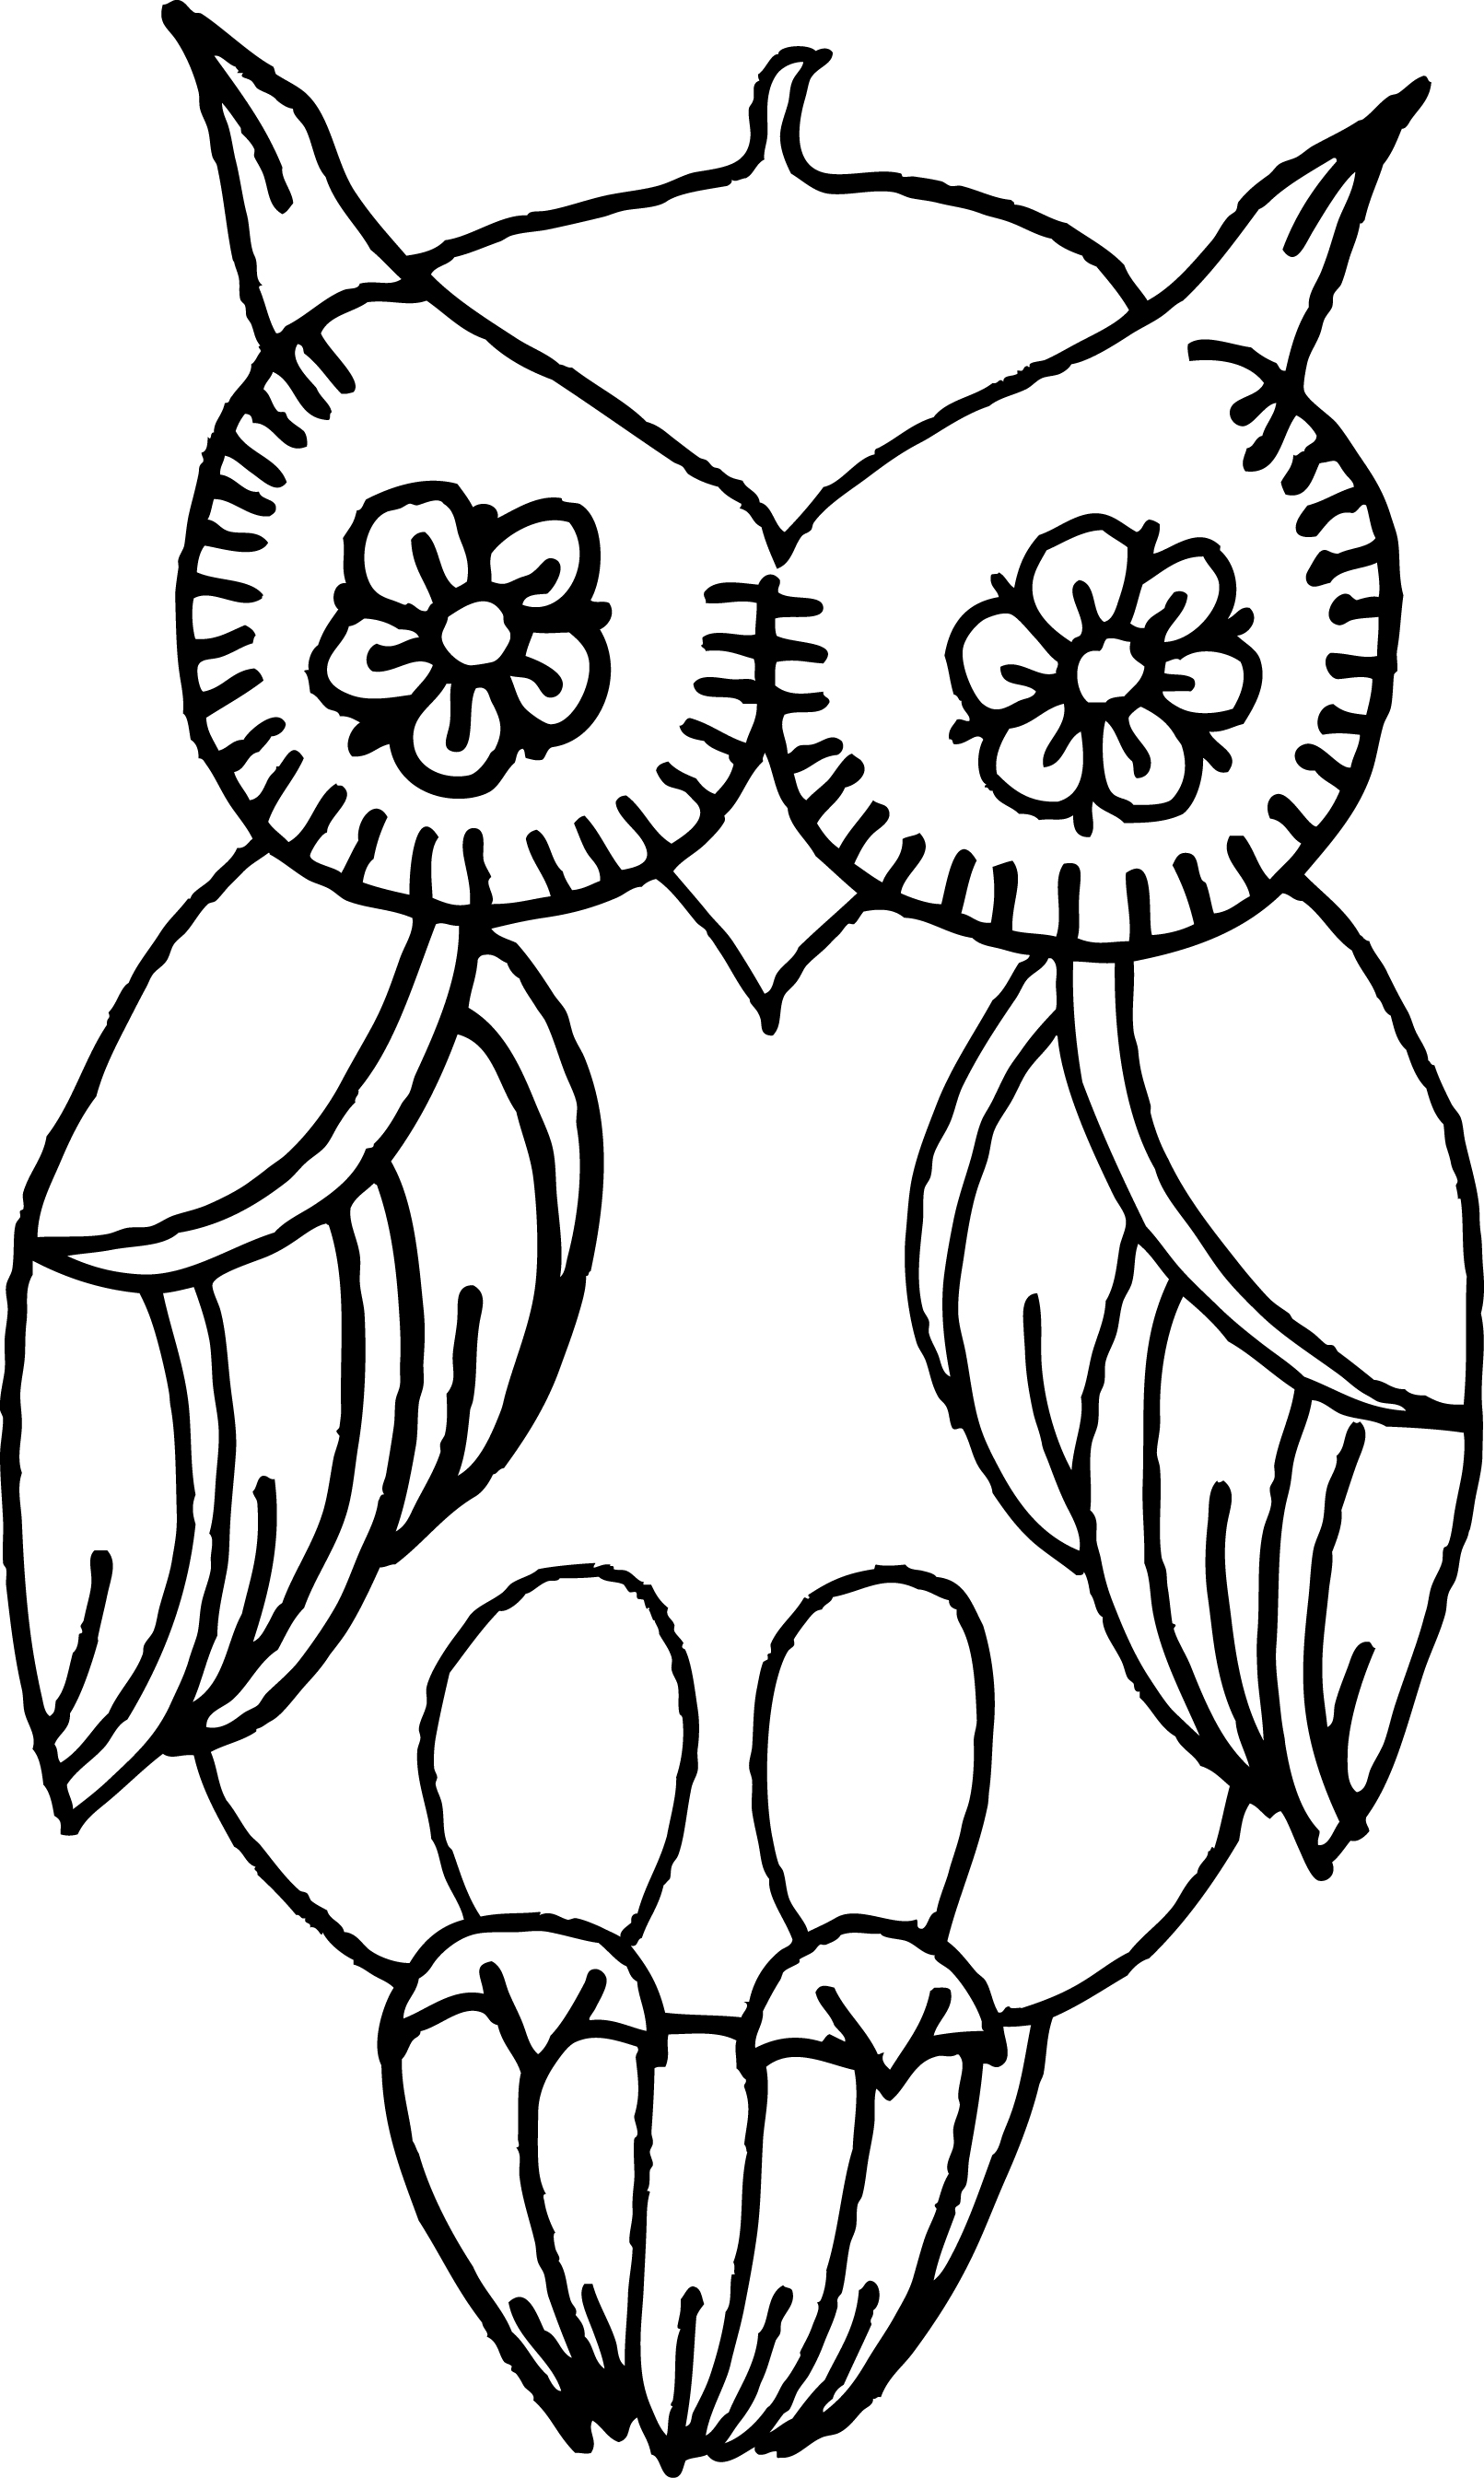 1611x2690 Easy Flowers To Draw For Beginners